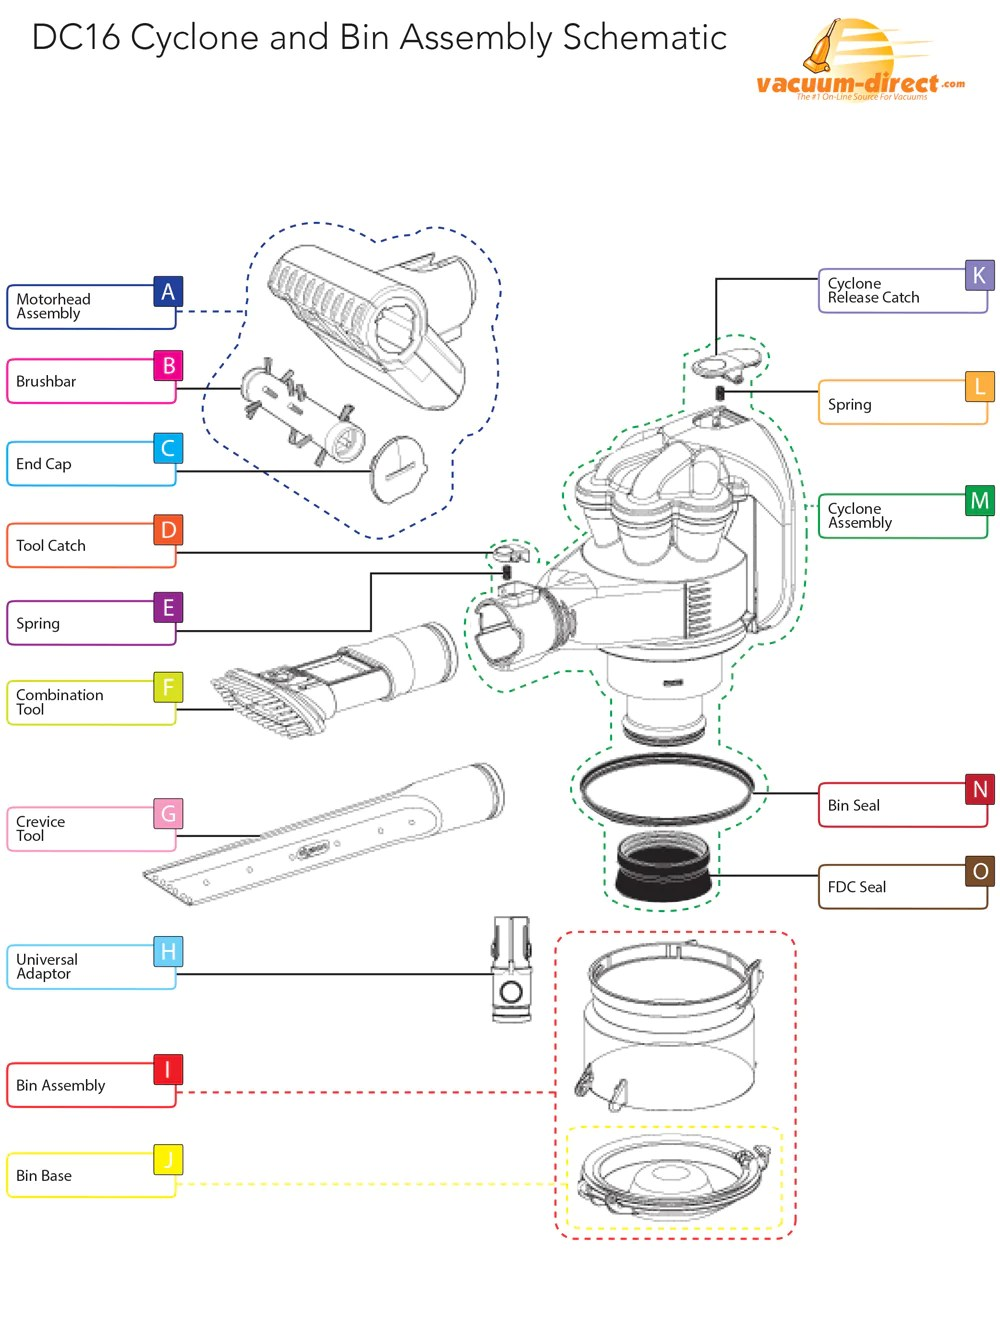 medium resolution of click here to view larger image dyson dc16 cyclone bin parts diagram